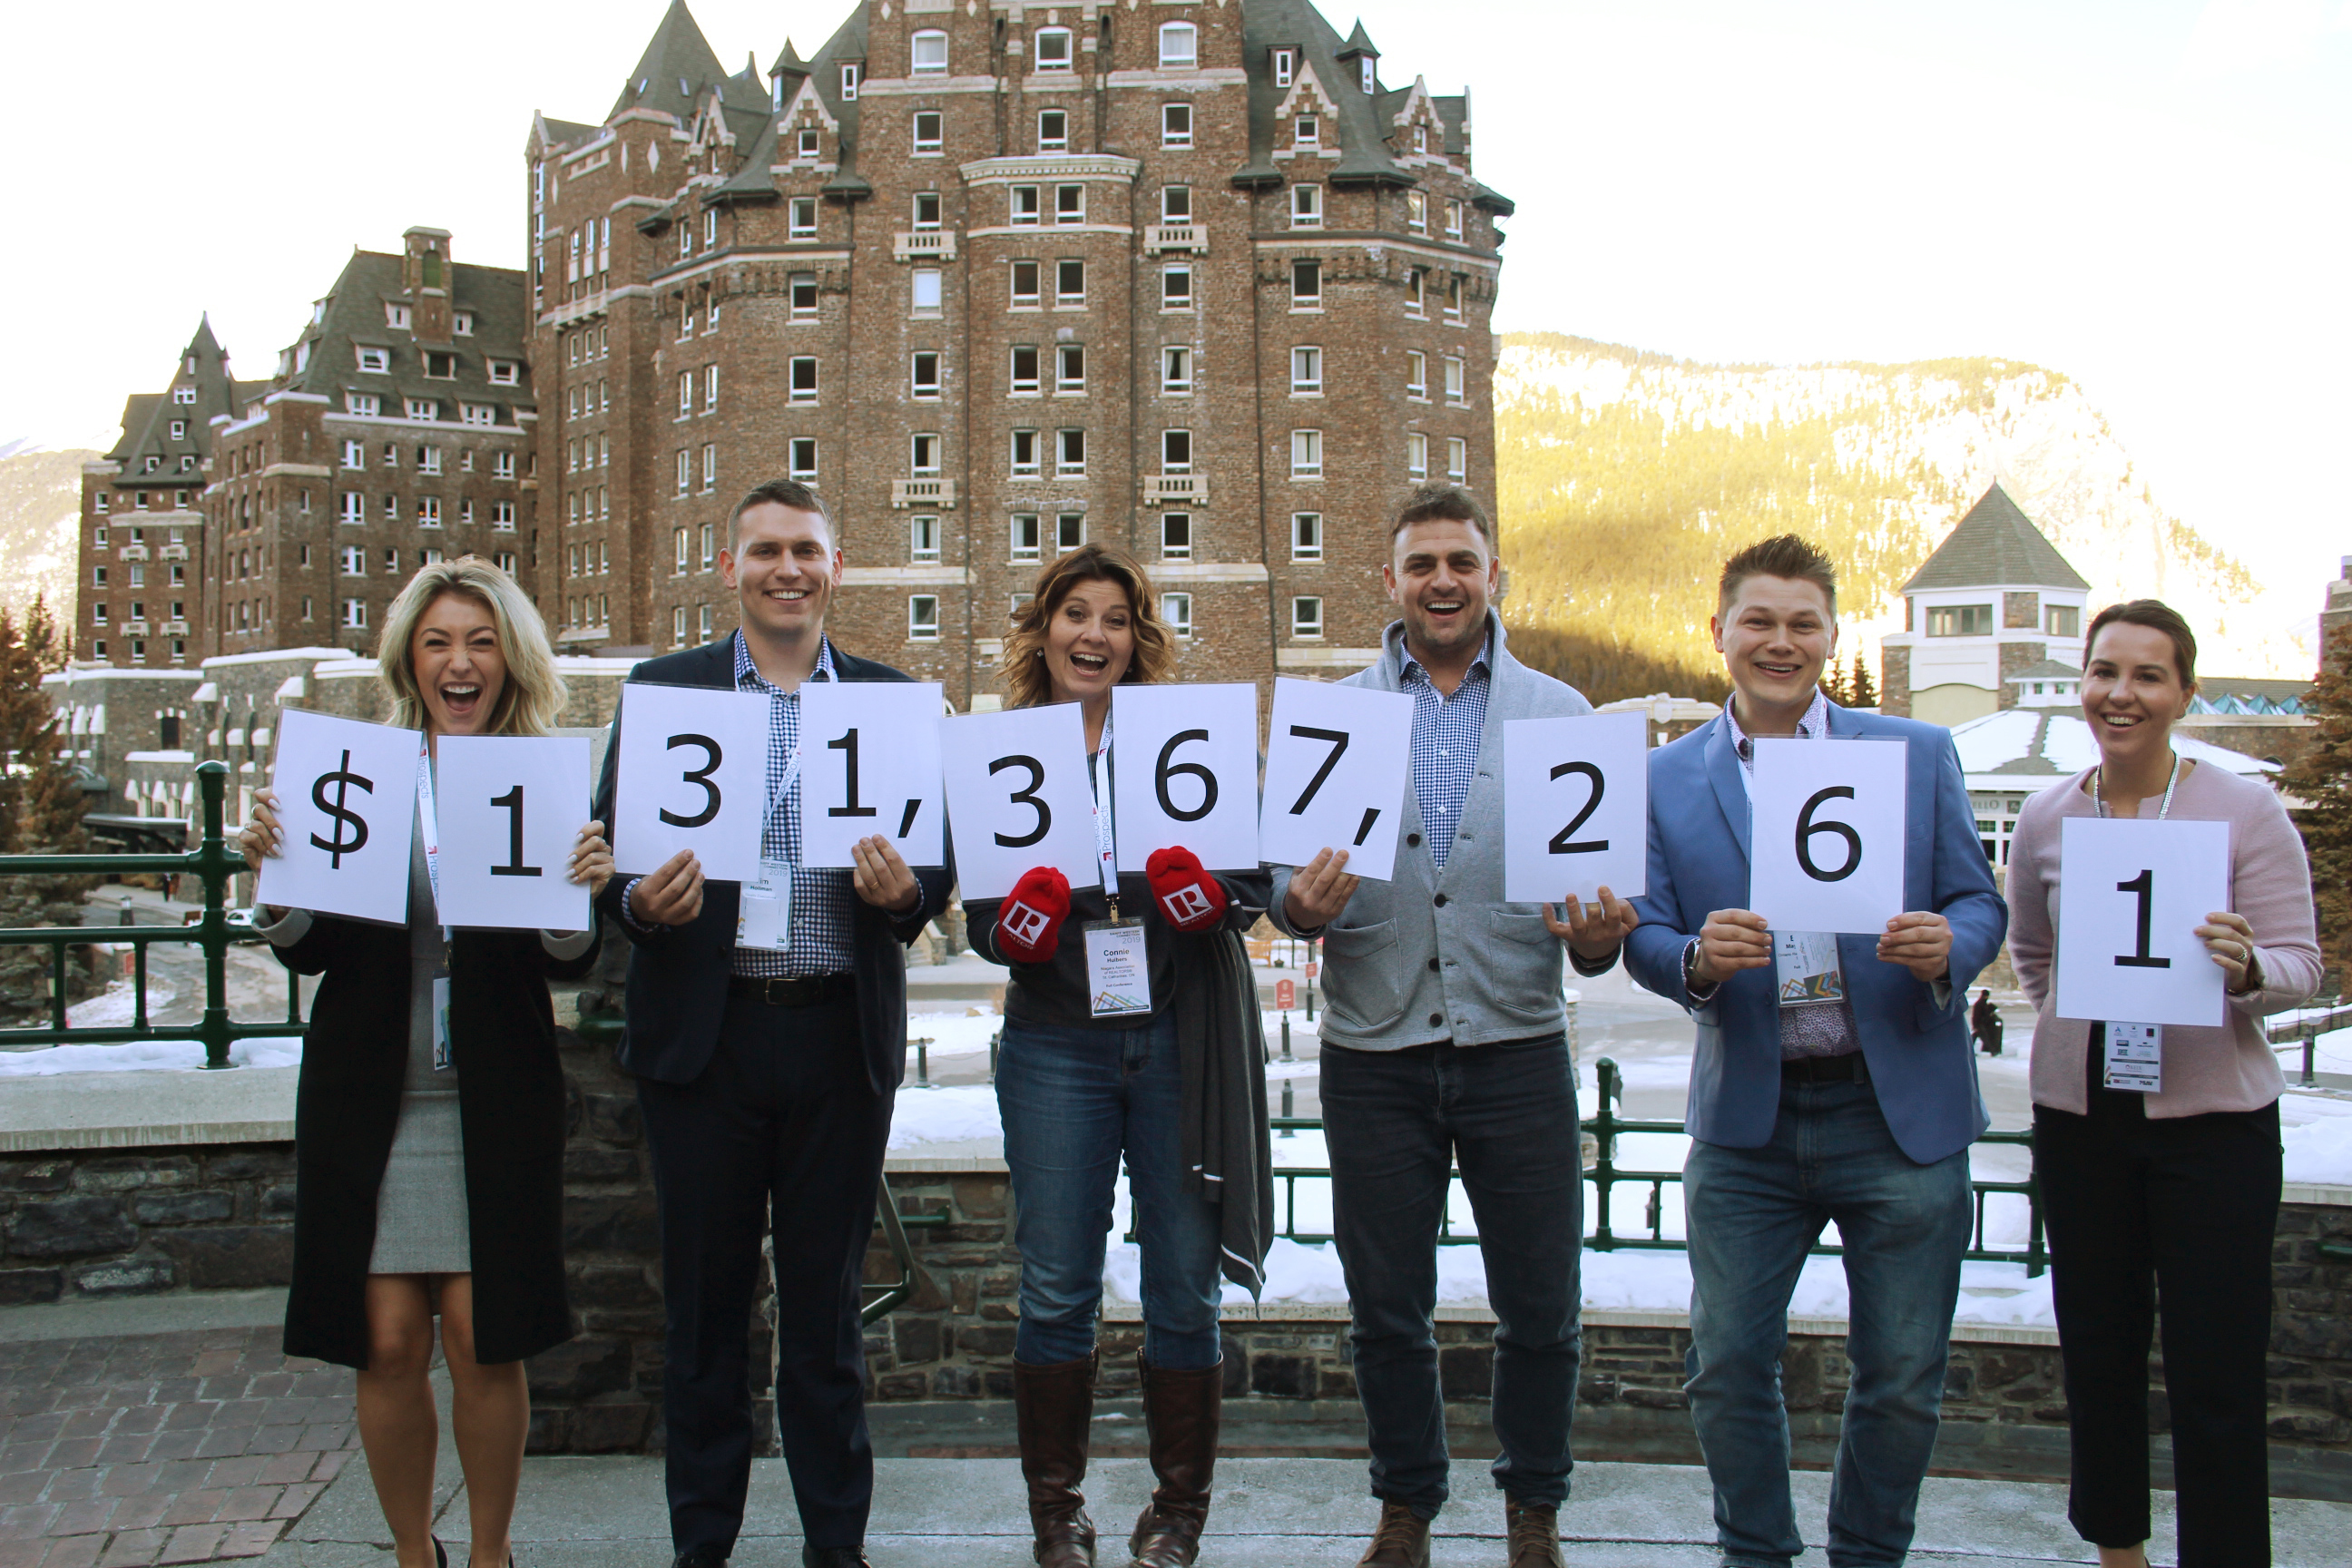 The REALTOR® community has reported a whopping $131,367,261.96 in funds raised and donated